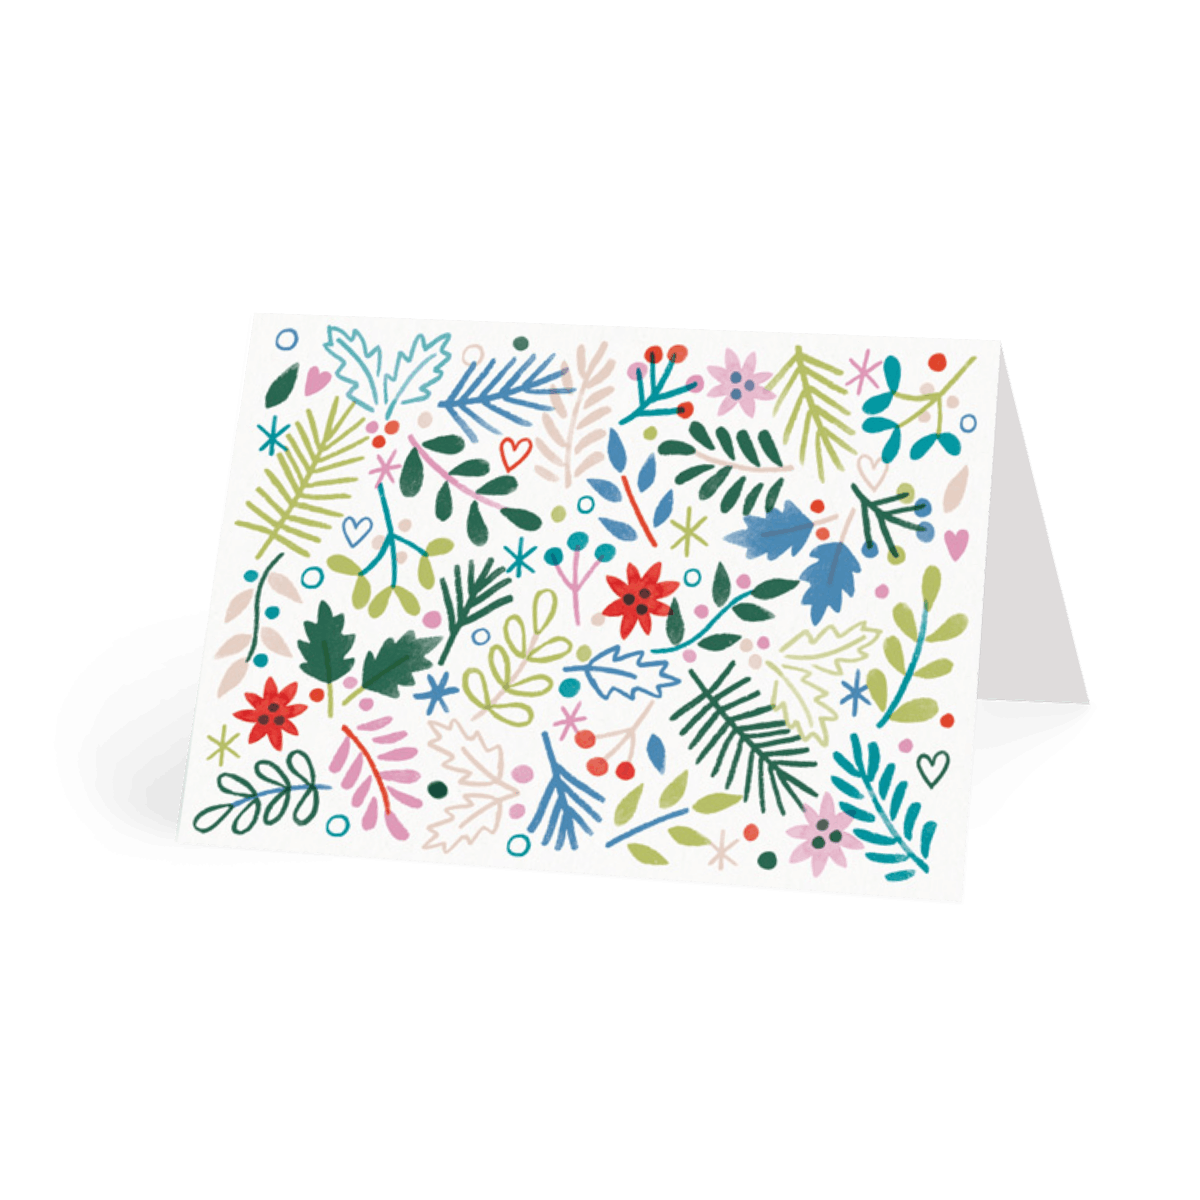 Https%3a%2f%2fwww.papier.com%2fproduct image%2f94969%2f14%2fchristmas botanical 23763 front 1572355209.png?ixlib=rb 1.1